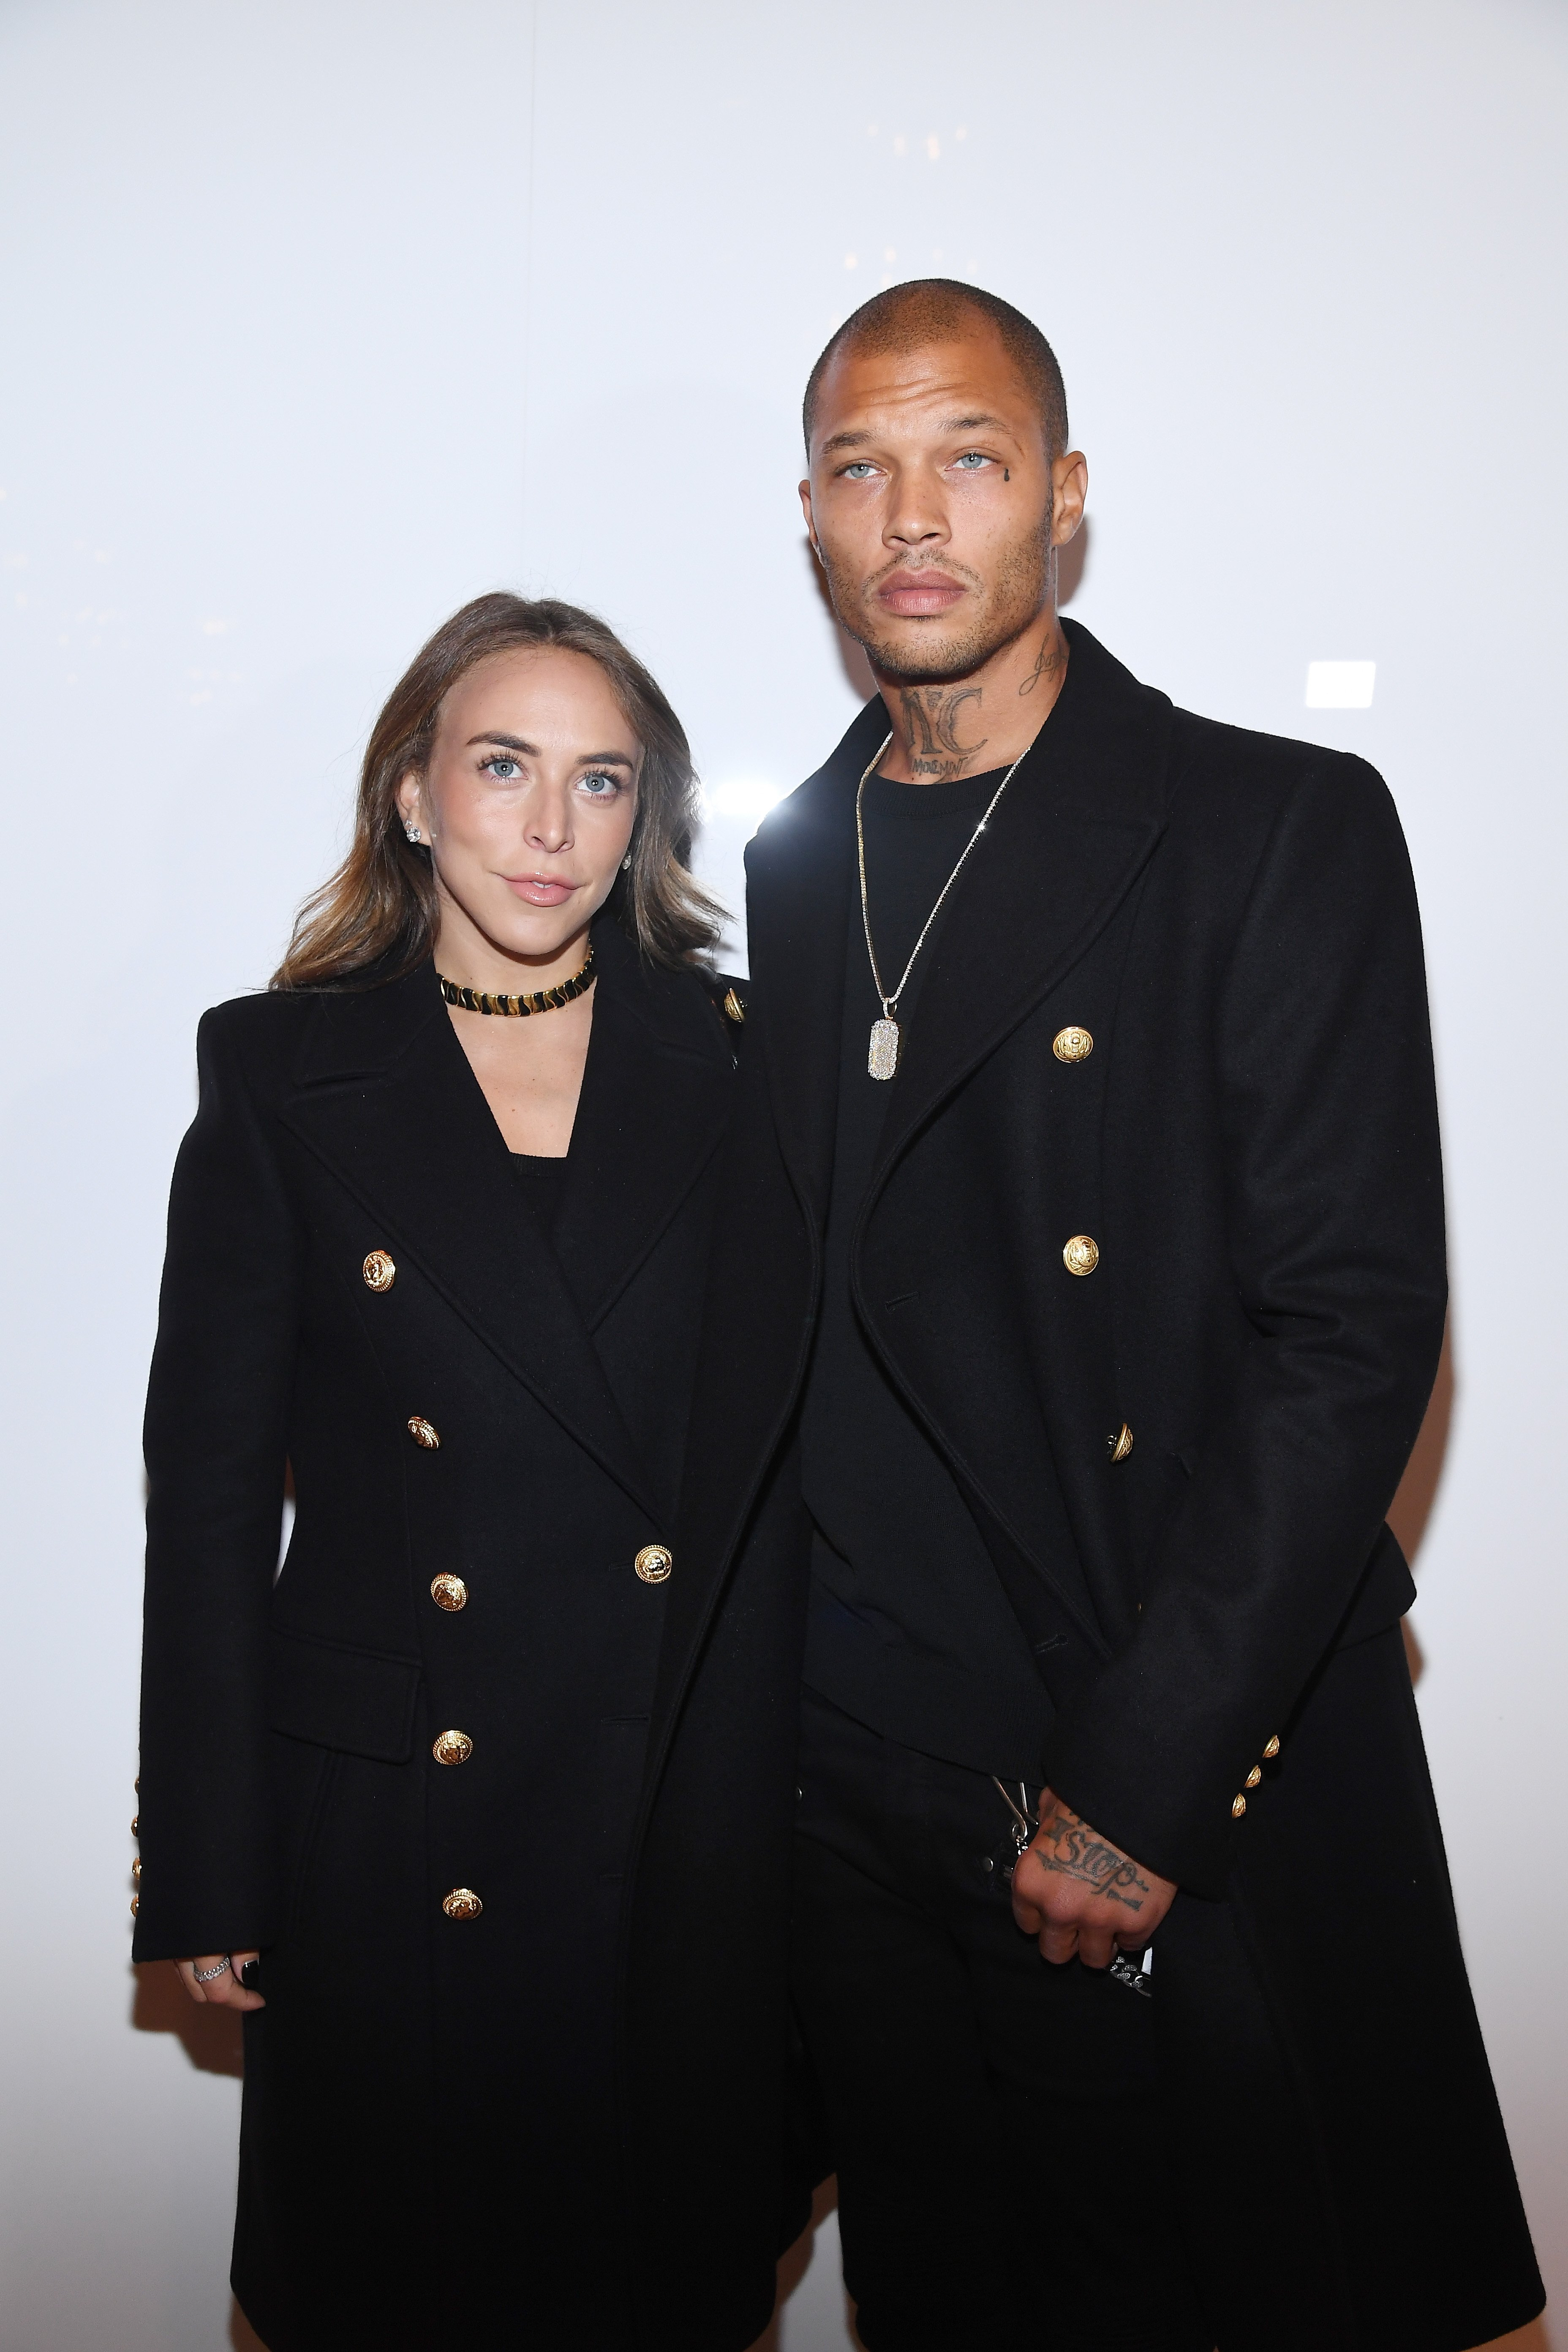 Chloe Green and Jeremy Meeks at the Paris Fashion Week on January 20, 2018 in Paris, France | Photo: Getty Images